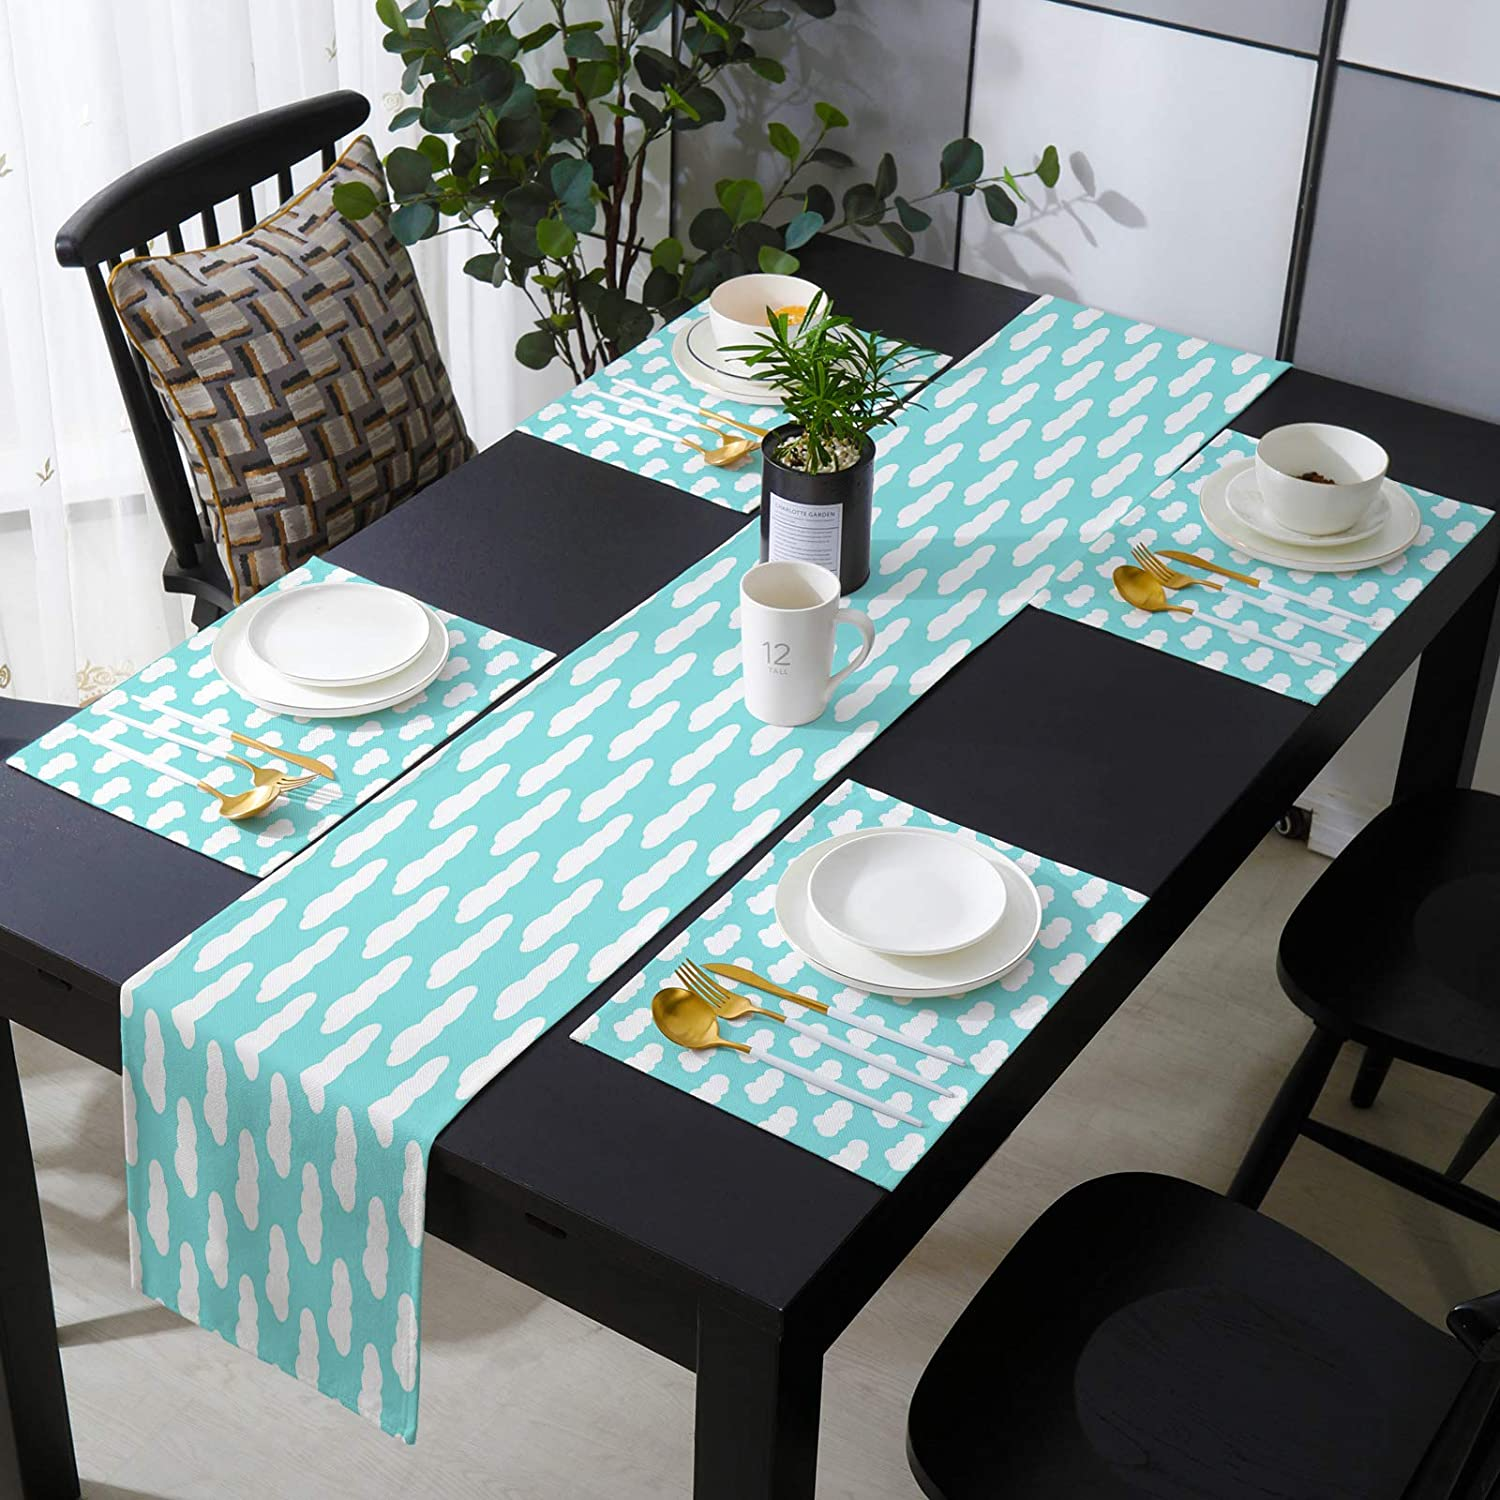 Cotton Linen Placemats Set of 6 and 13